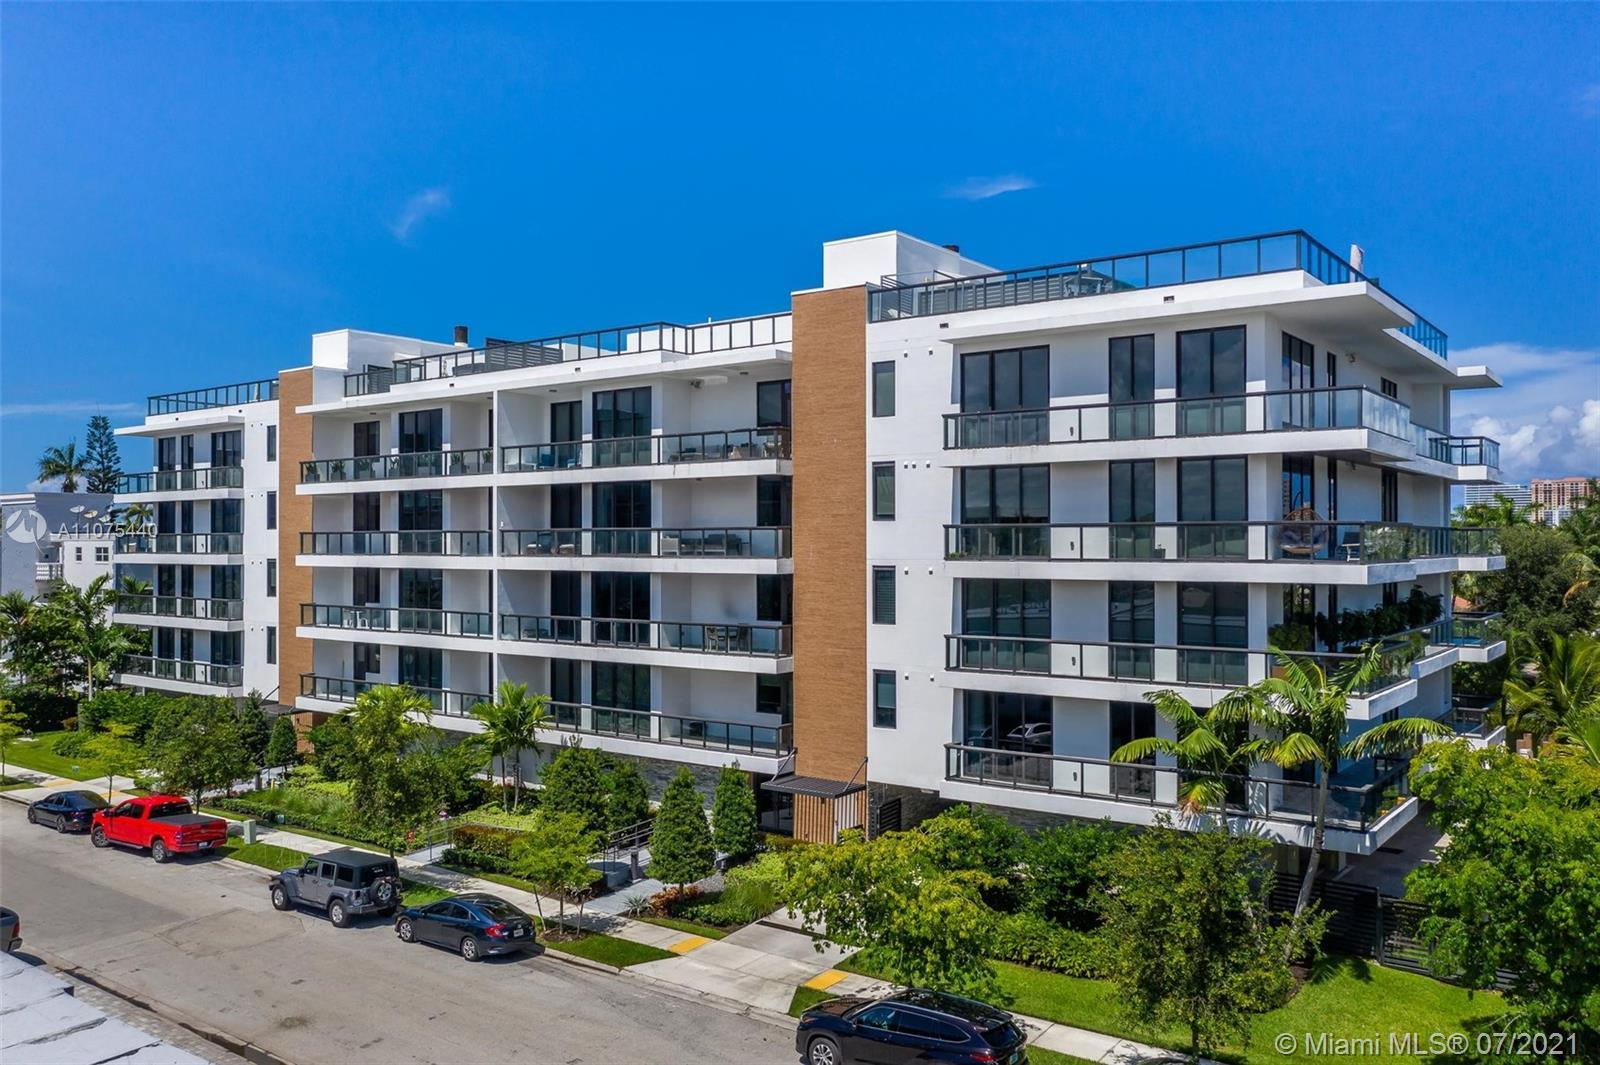 Absolutely gorgeous 3/2 ULTRA MODERN WATERFRONT CONDO W/ PRIVATE 35 FT BOAT DOCK in the heart of EAS